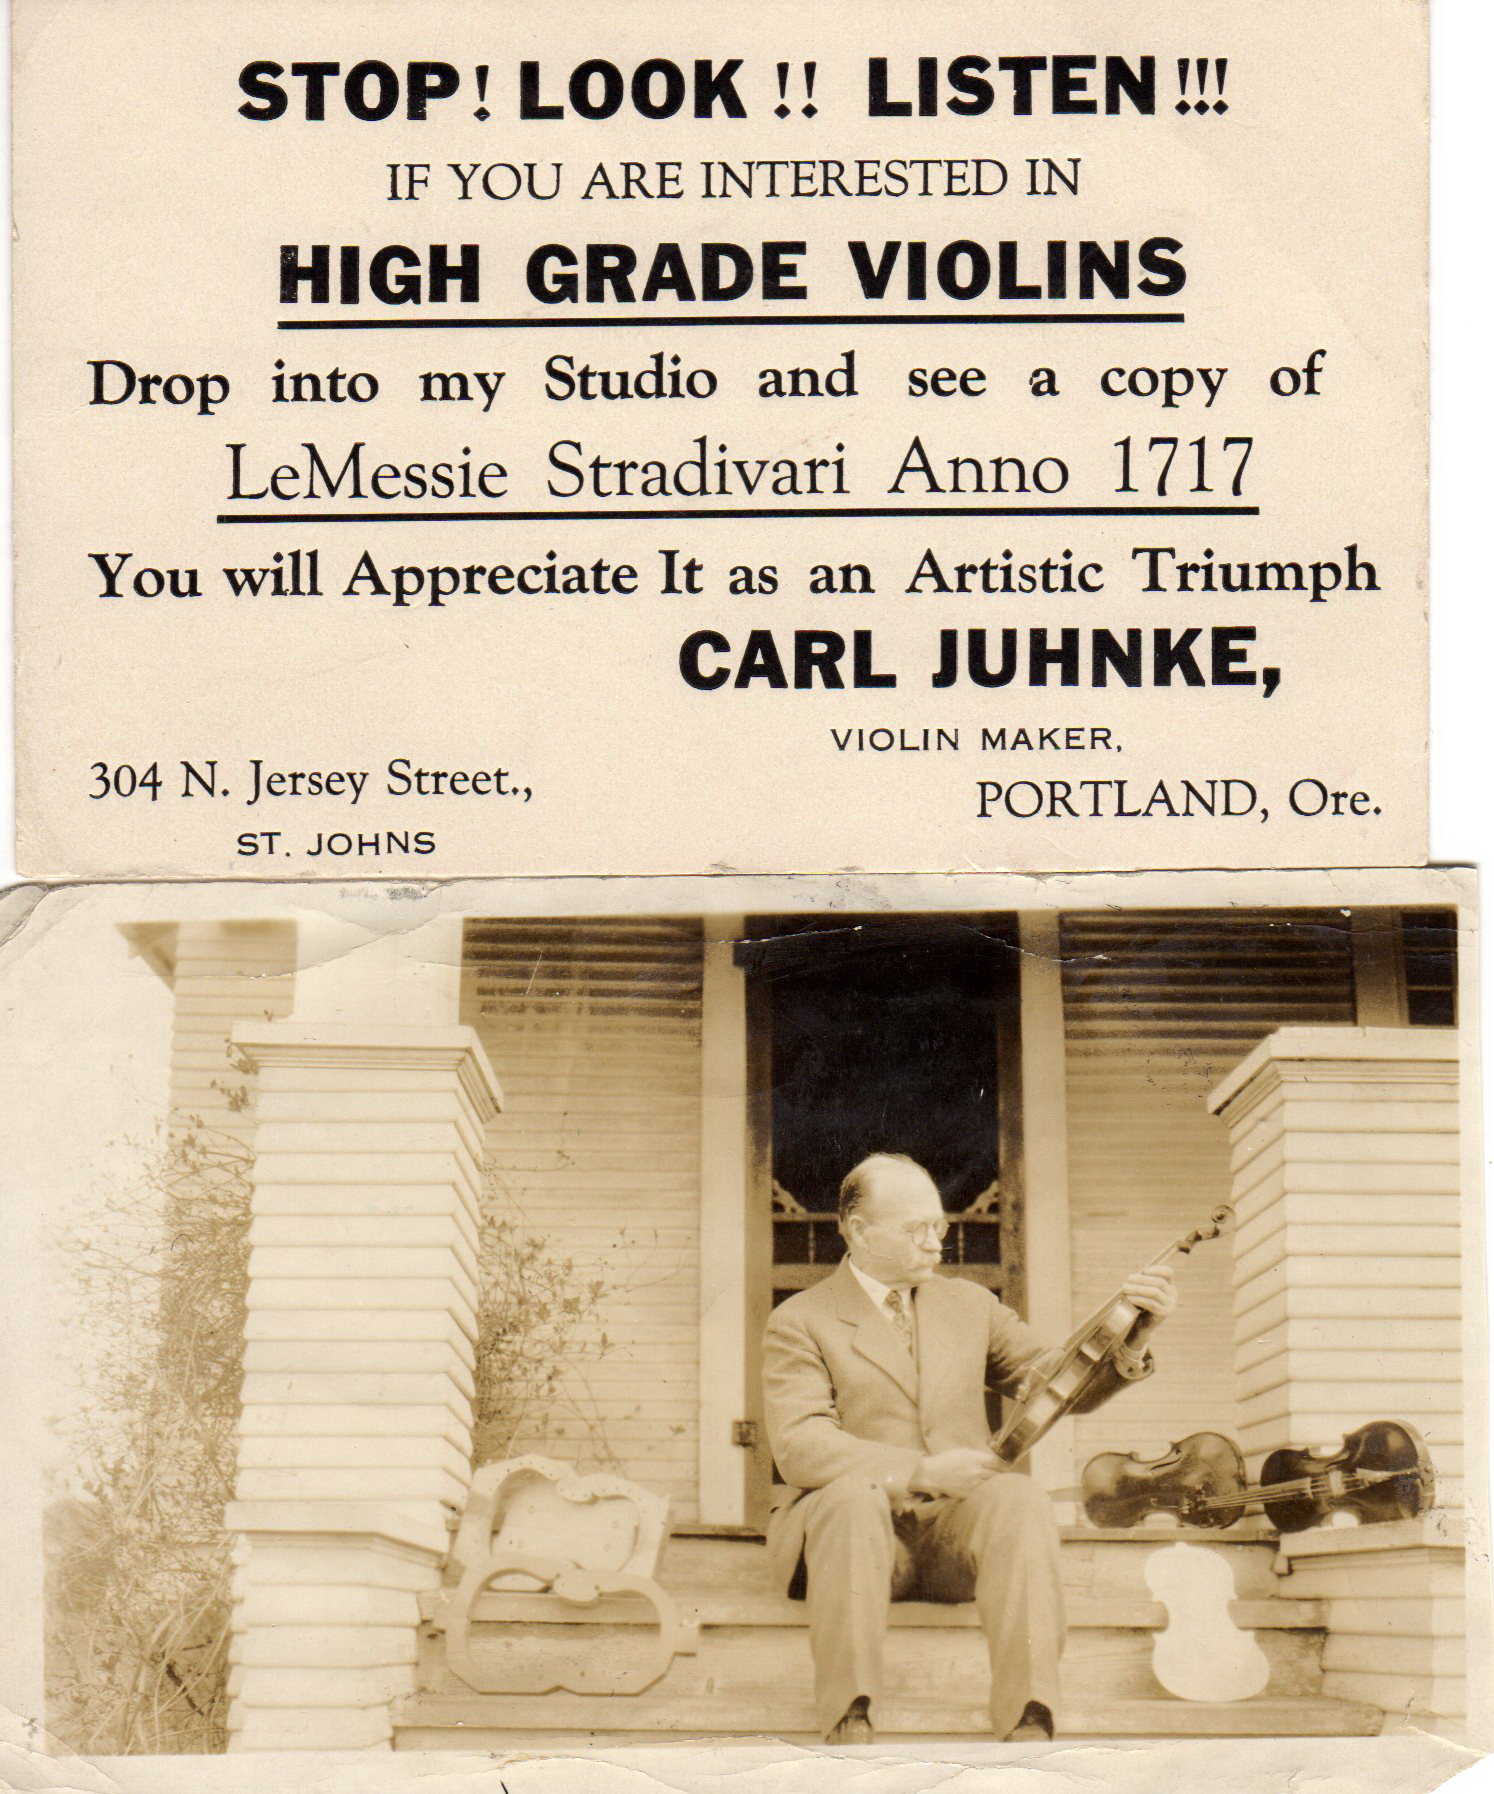 1922 304 N Jersey (McChesney building) Carl Juhnke Philadelphia Shoe Shop-Musical instruments violins a specilty